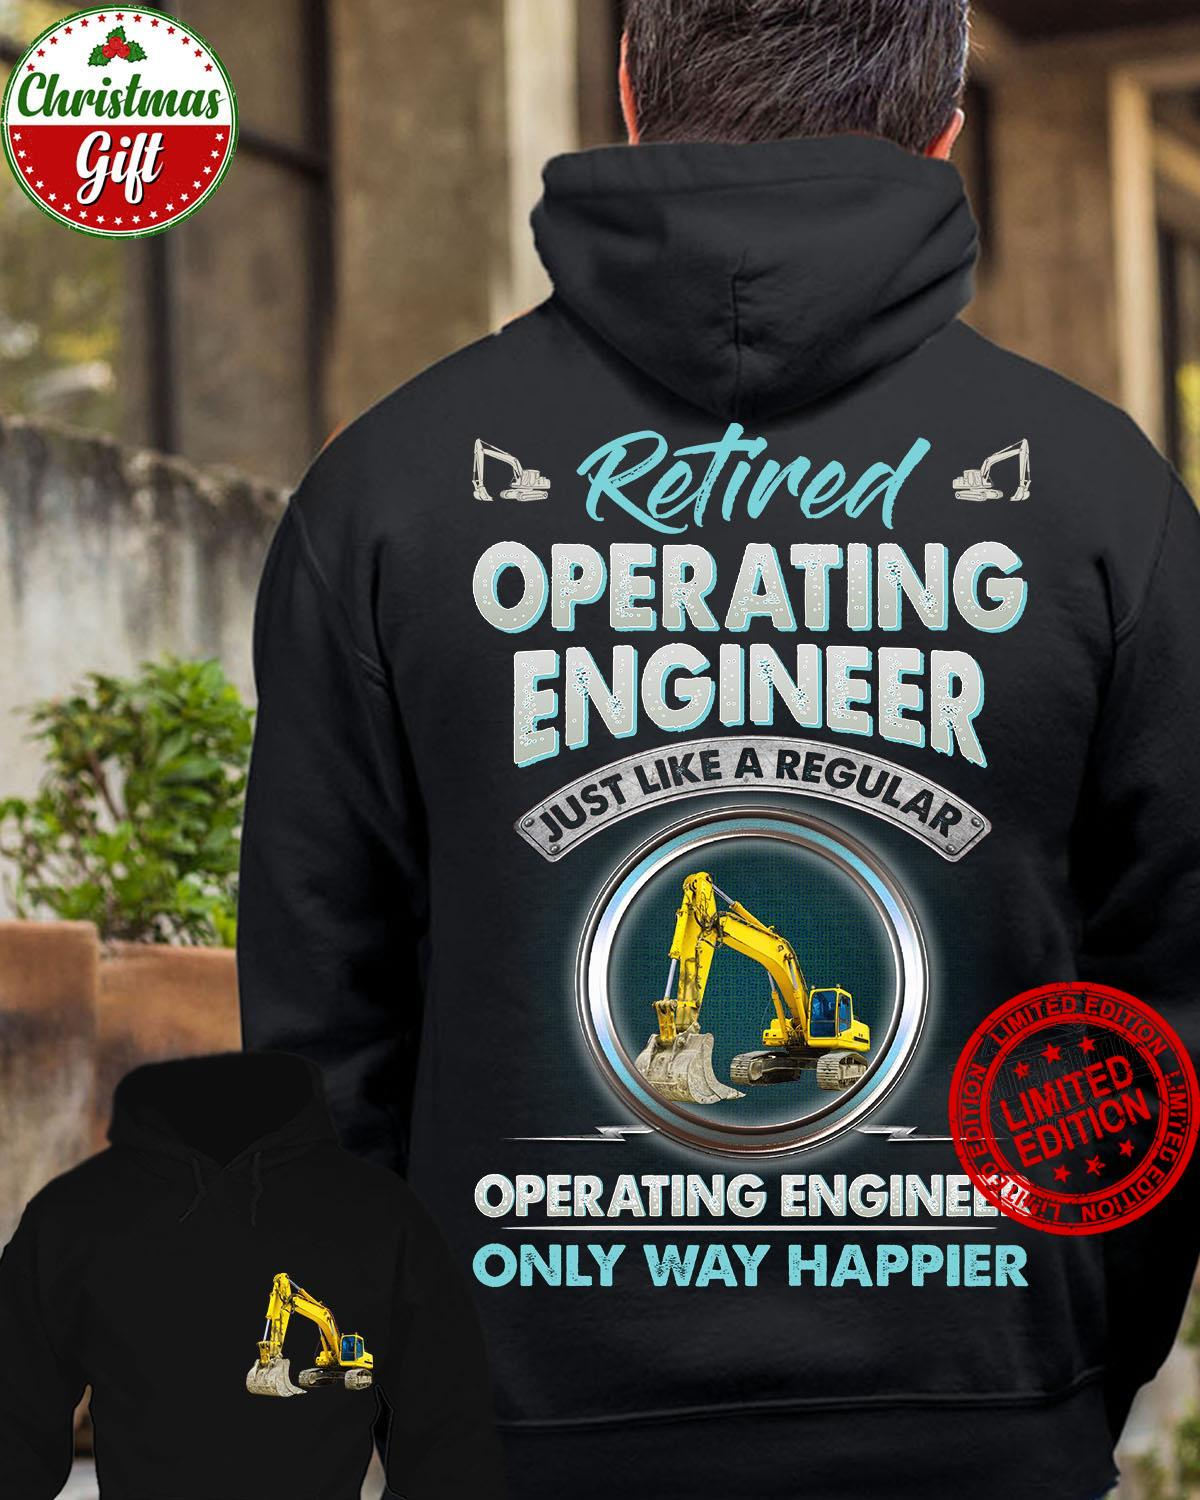 Retired Operating Engineer Just Like A Regular Bus Driver Only Way Happier Shirt